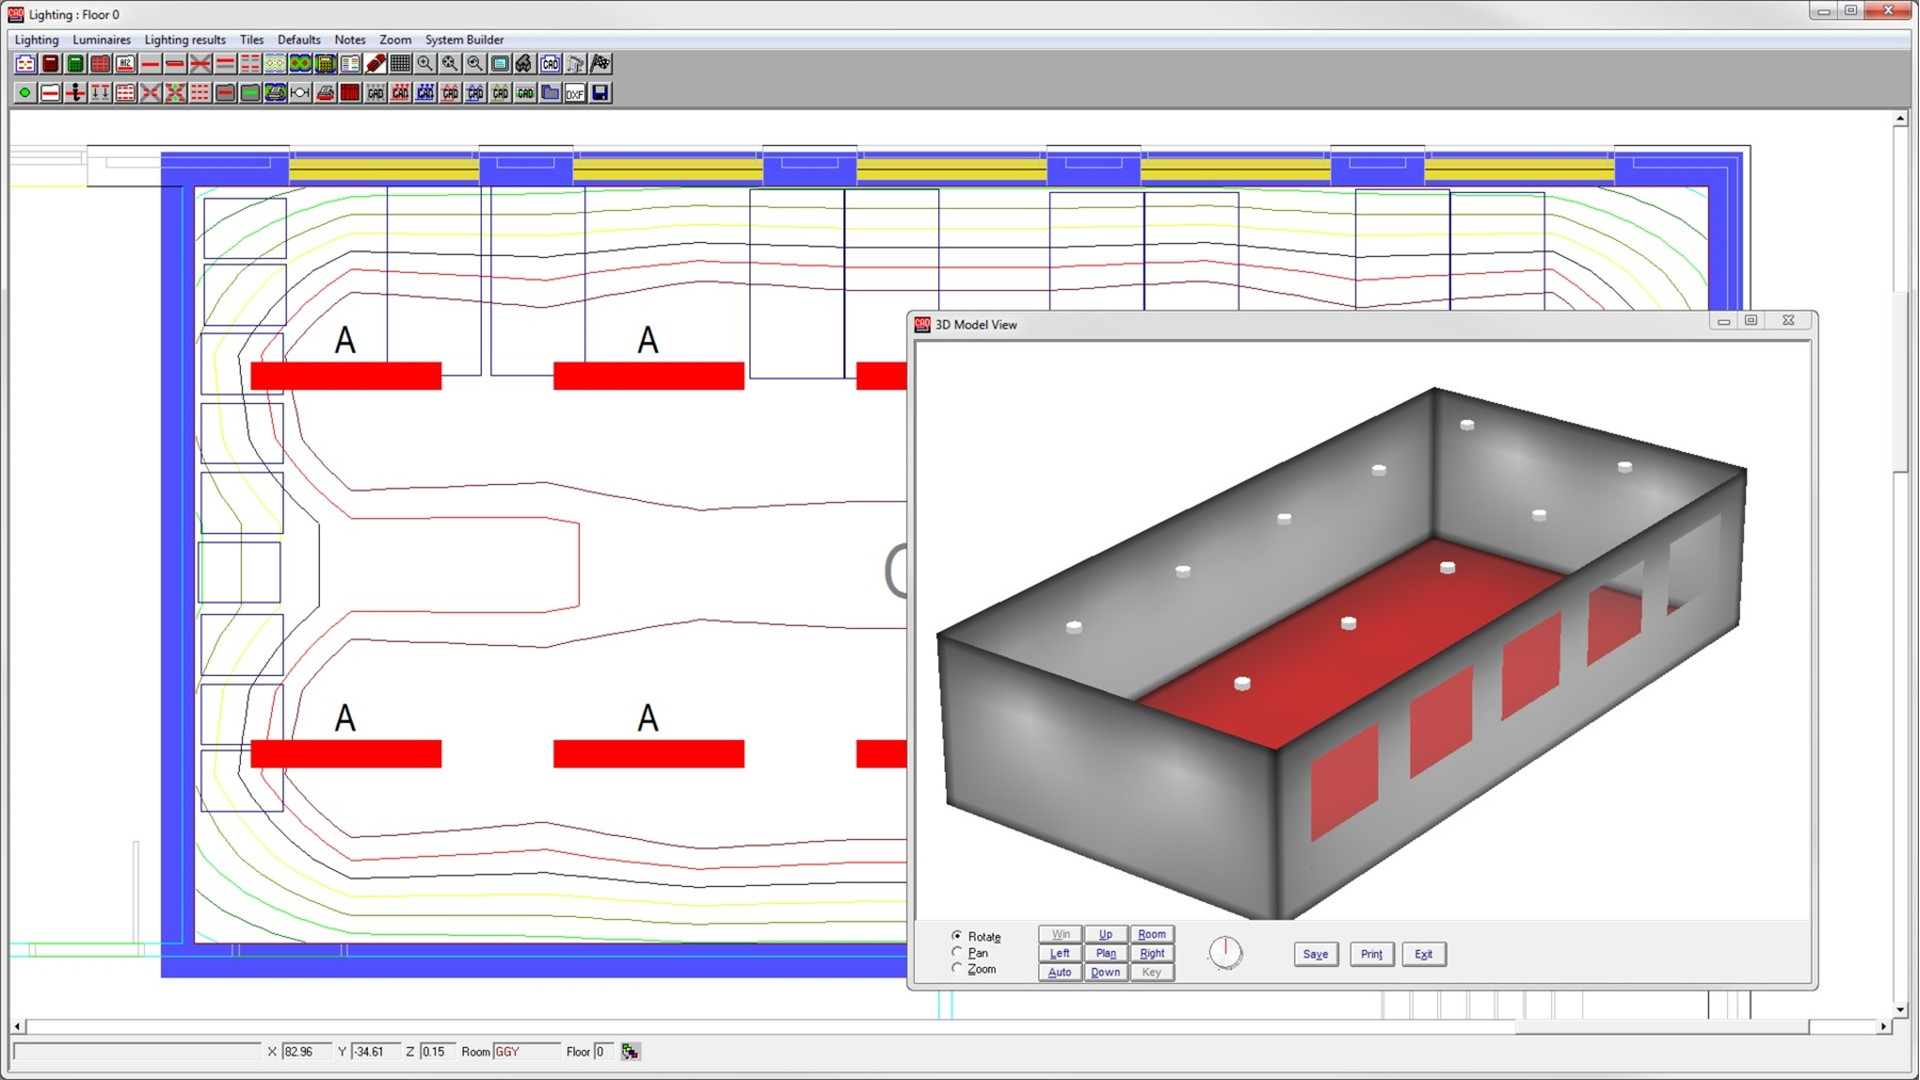 Uk building electrical design analysis software hevacomp for Building construction design software